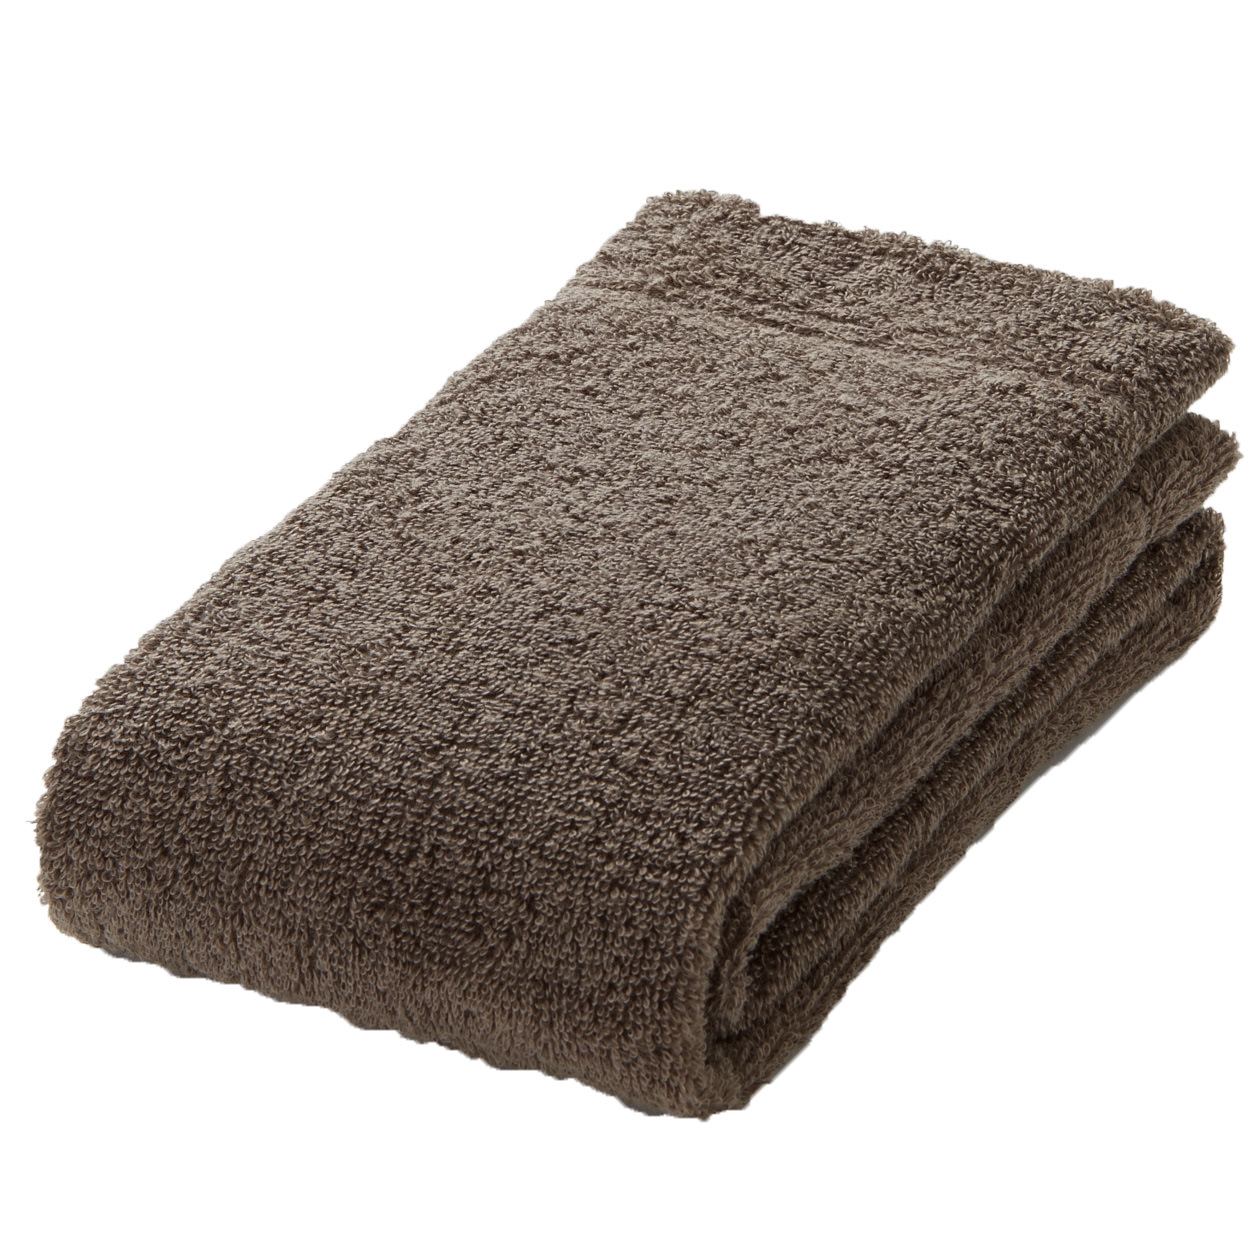 brown thin face towel